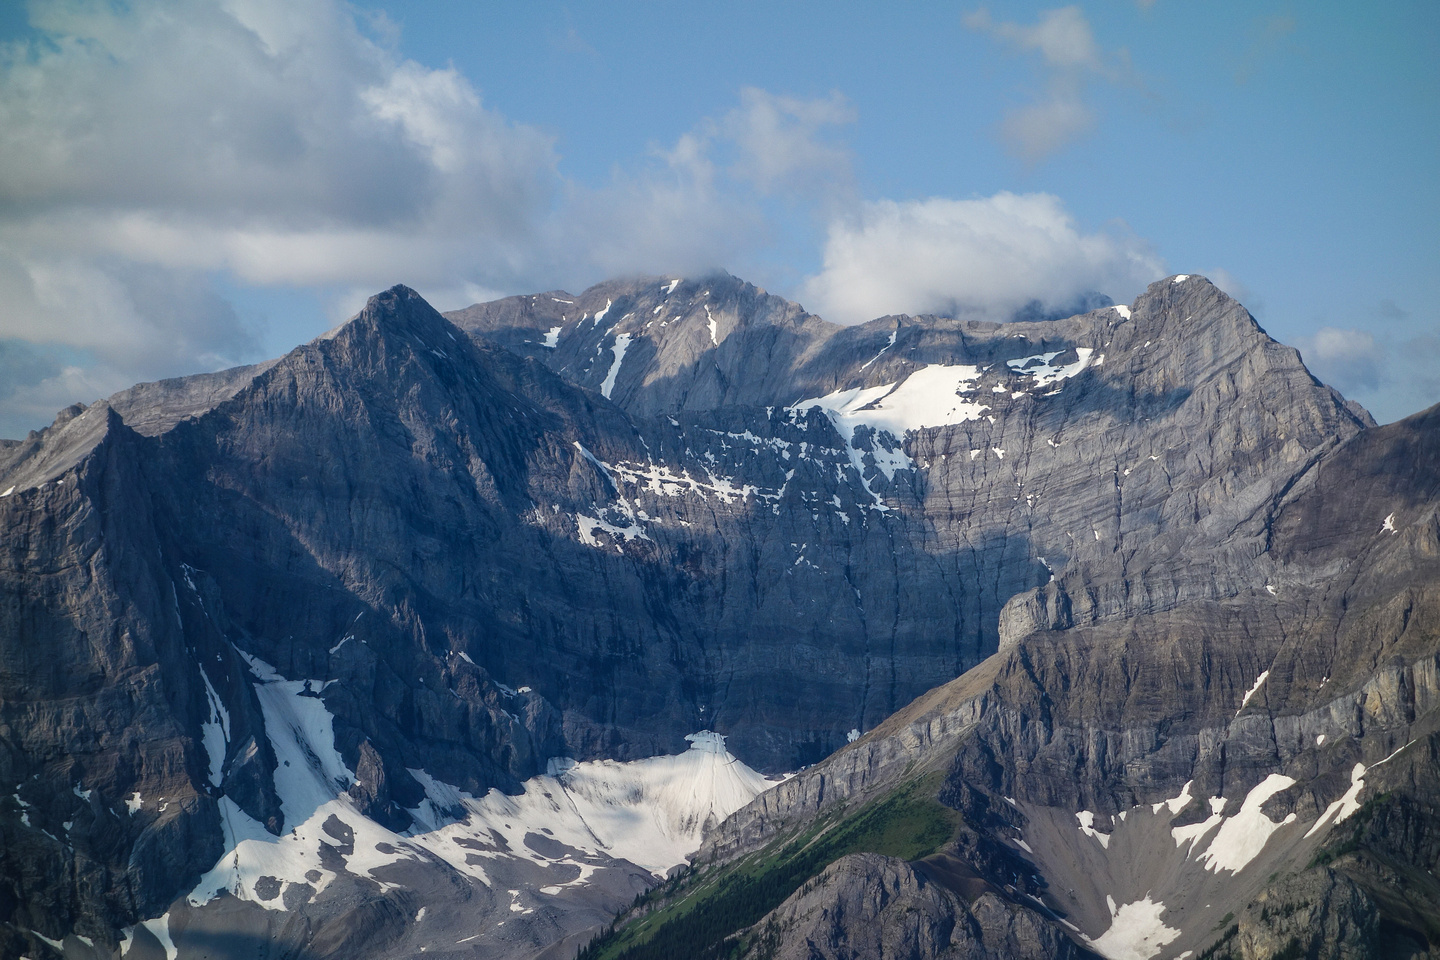 Looking across the Spray Lakes road to Mount French and Smith Dorrien.